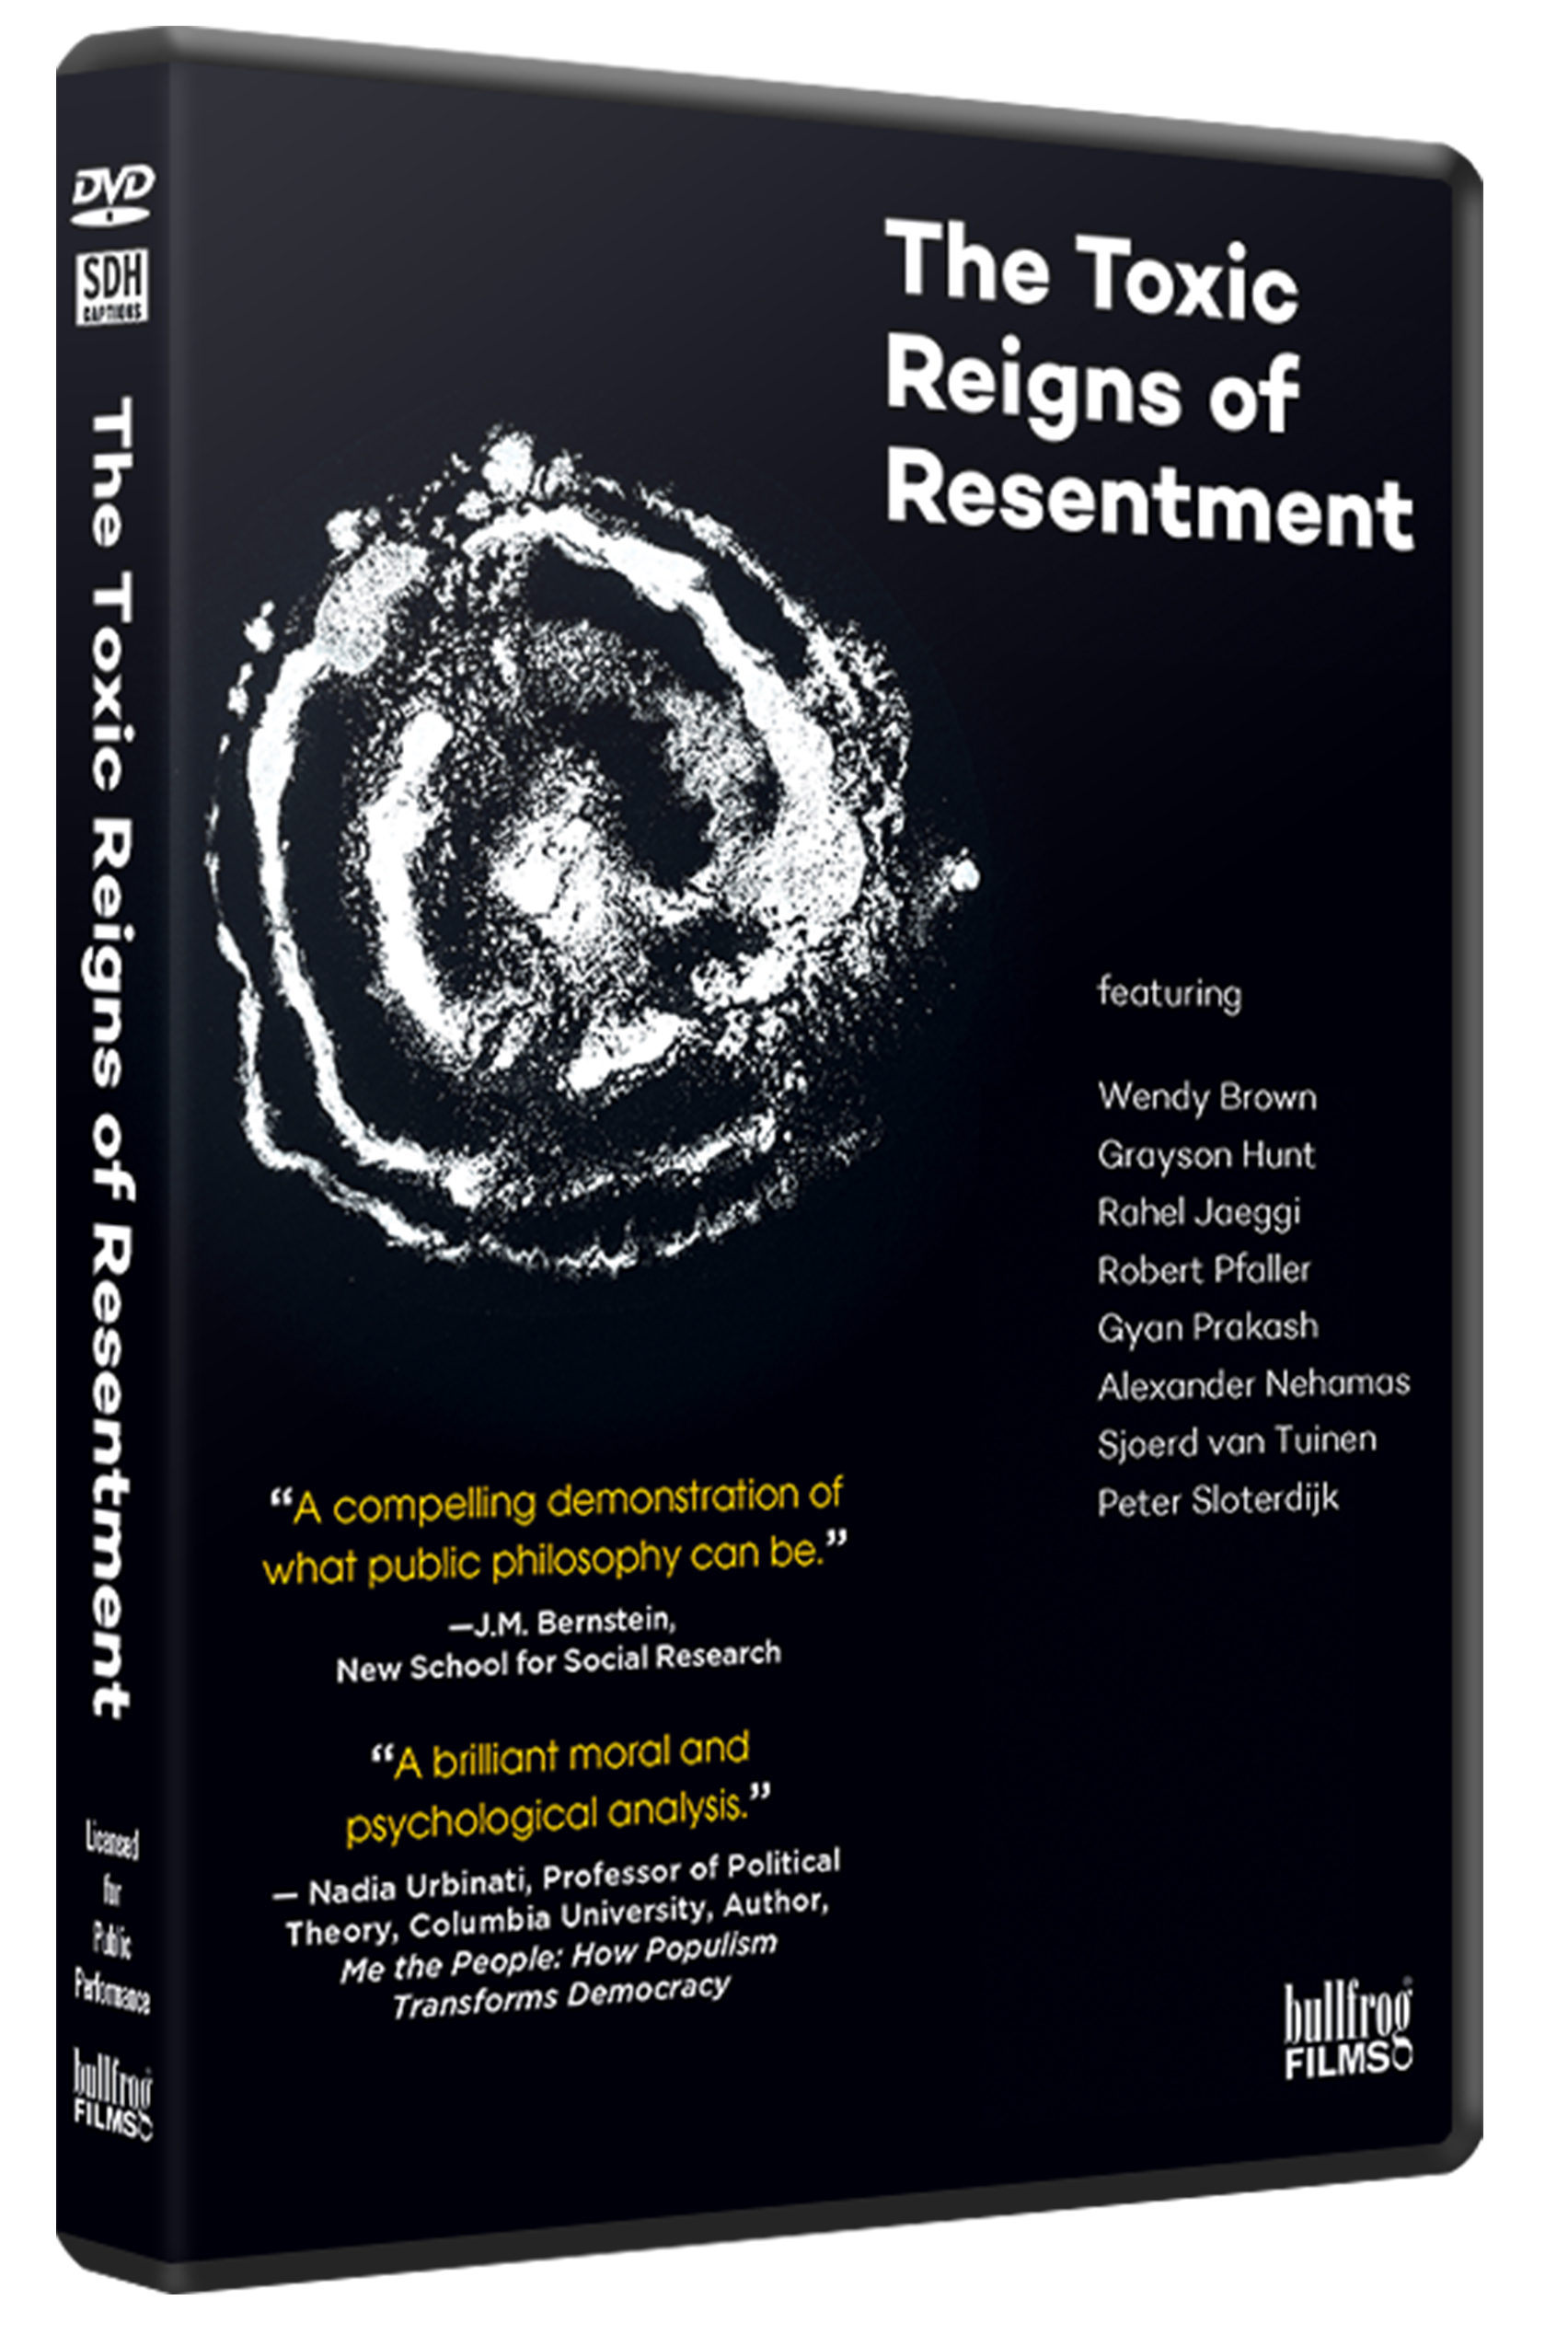 THE TOXIC REIGNS OF RESENTMENT